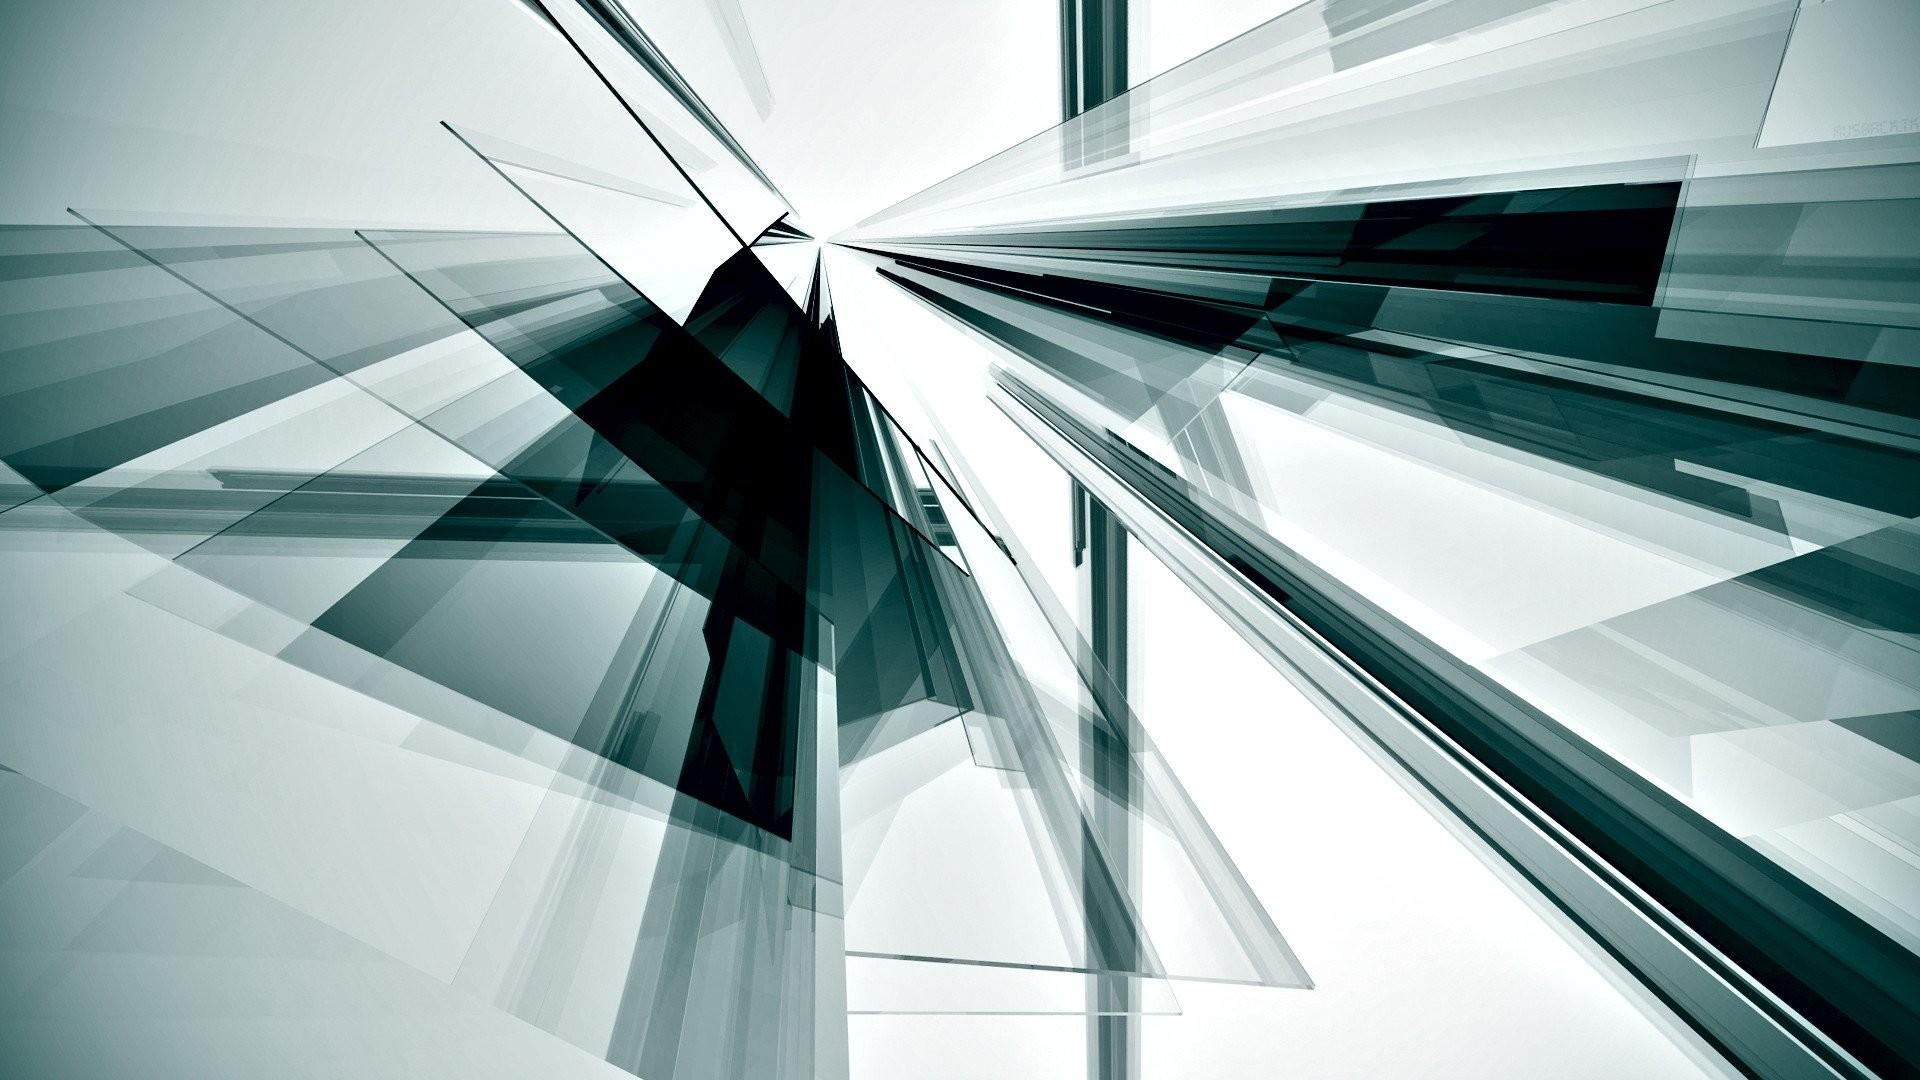 Abstract Minimalistic Silver Digital Art Renders